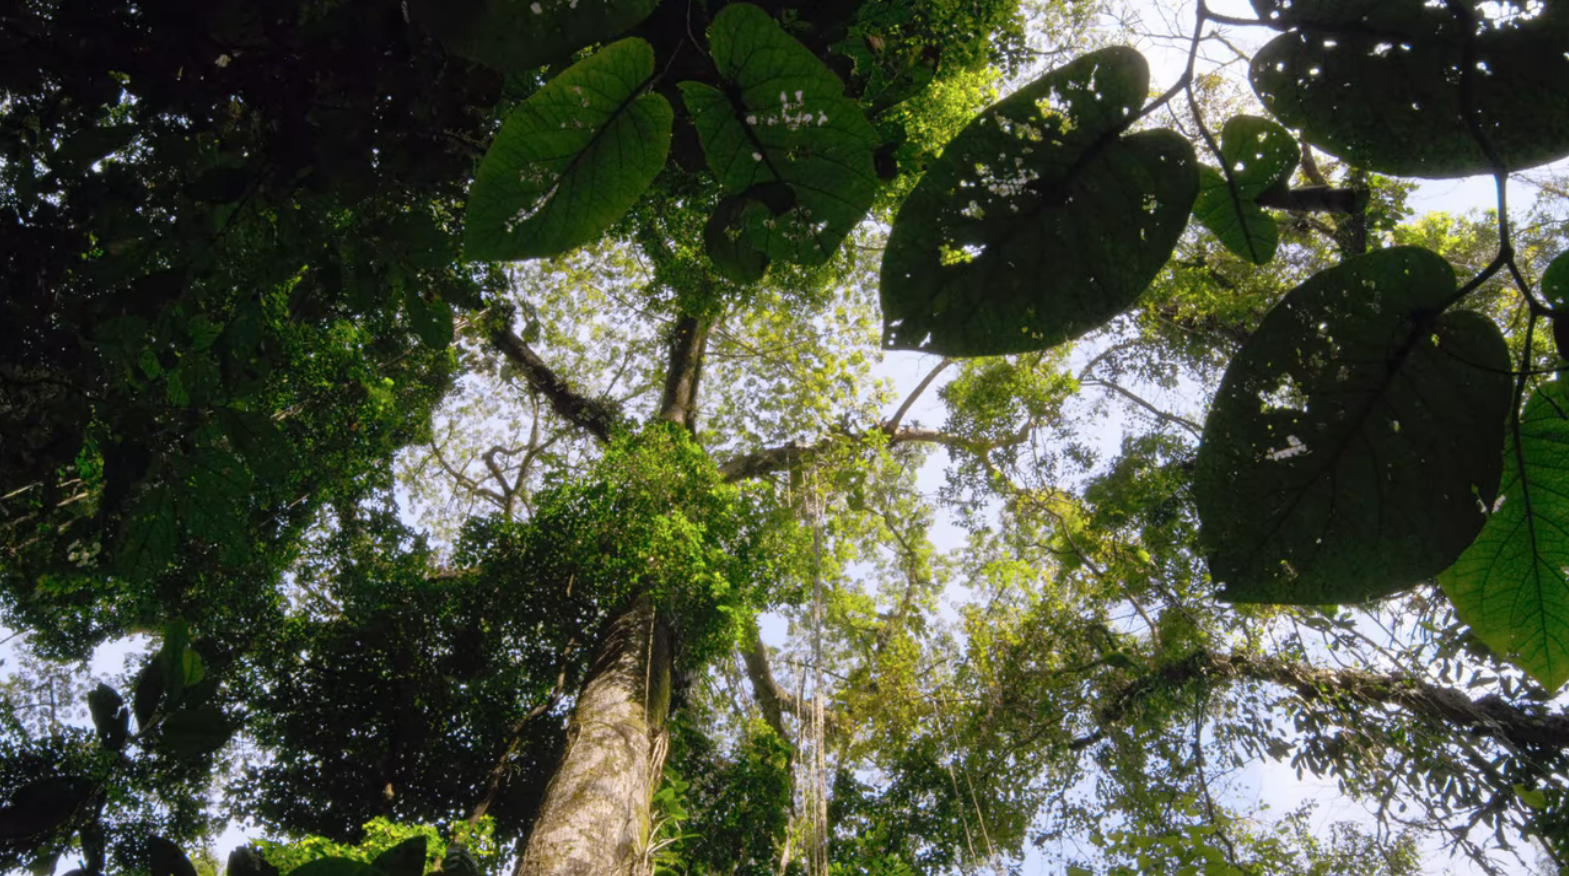 A view of treetops in the rainforest, looking up from the ground.